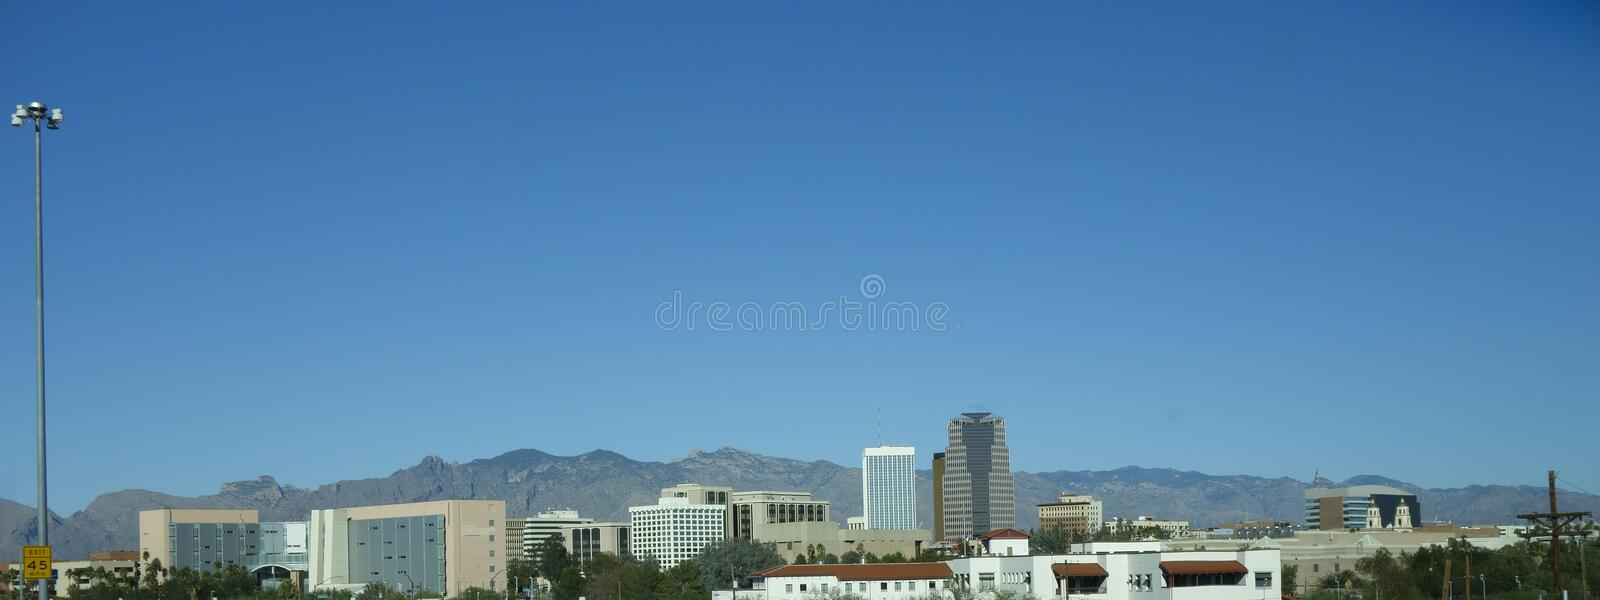 Download Panorama Of Tucson Downtown, AZ Stock Photography - Image: 37531932